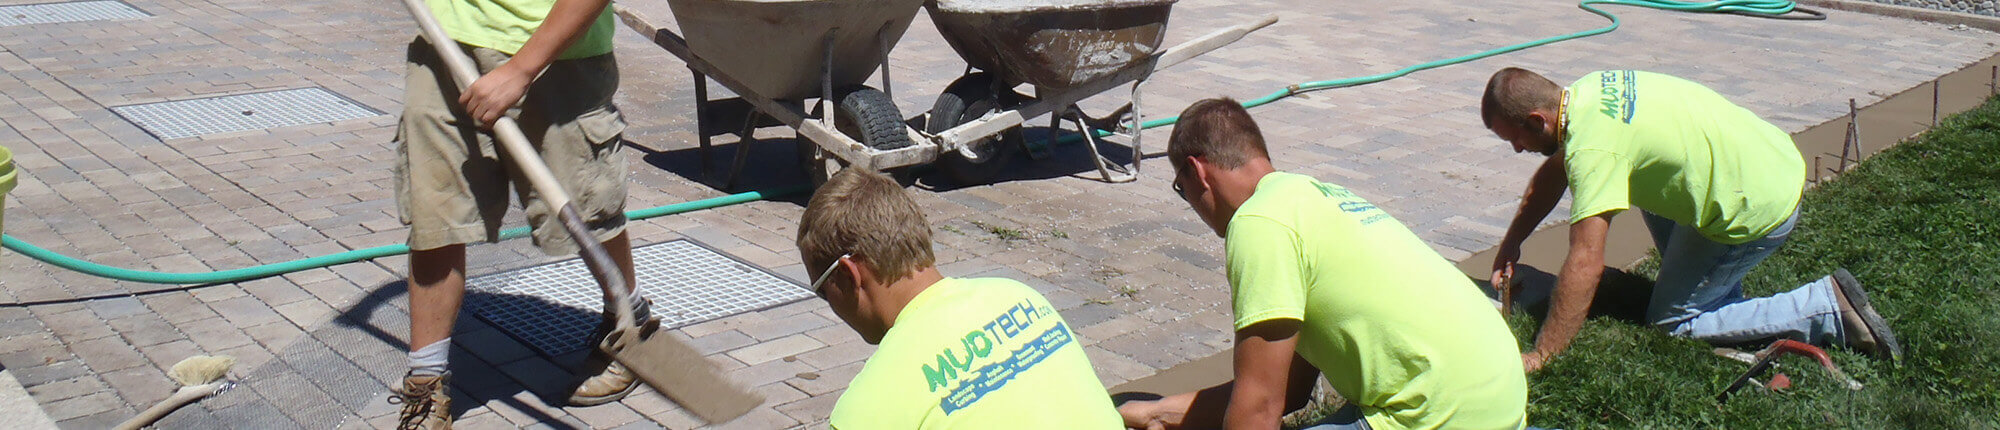 MUDTeCH technicians at work on a pavement repair job.